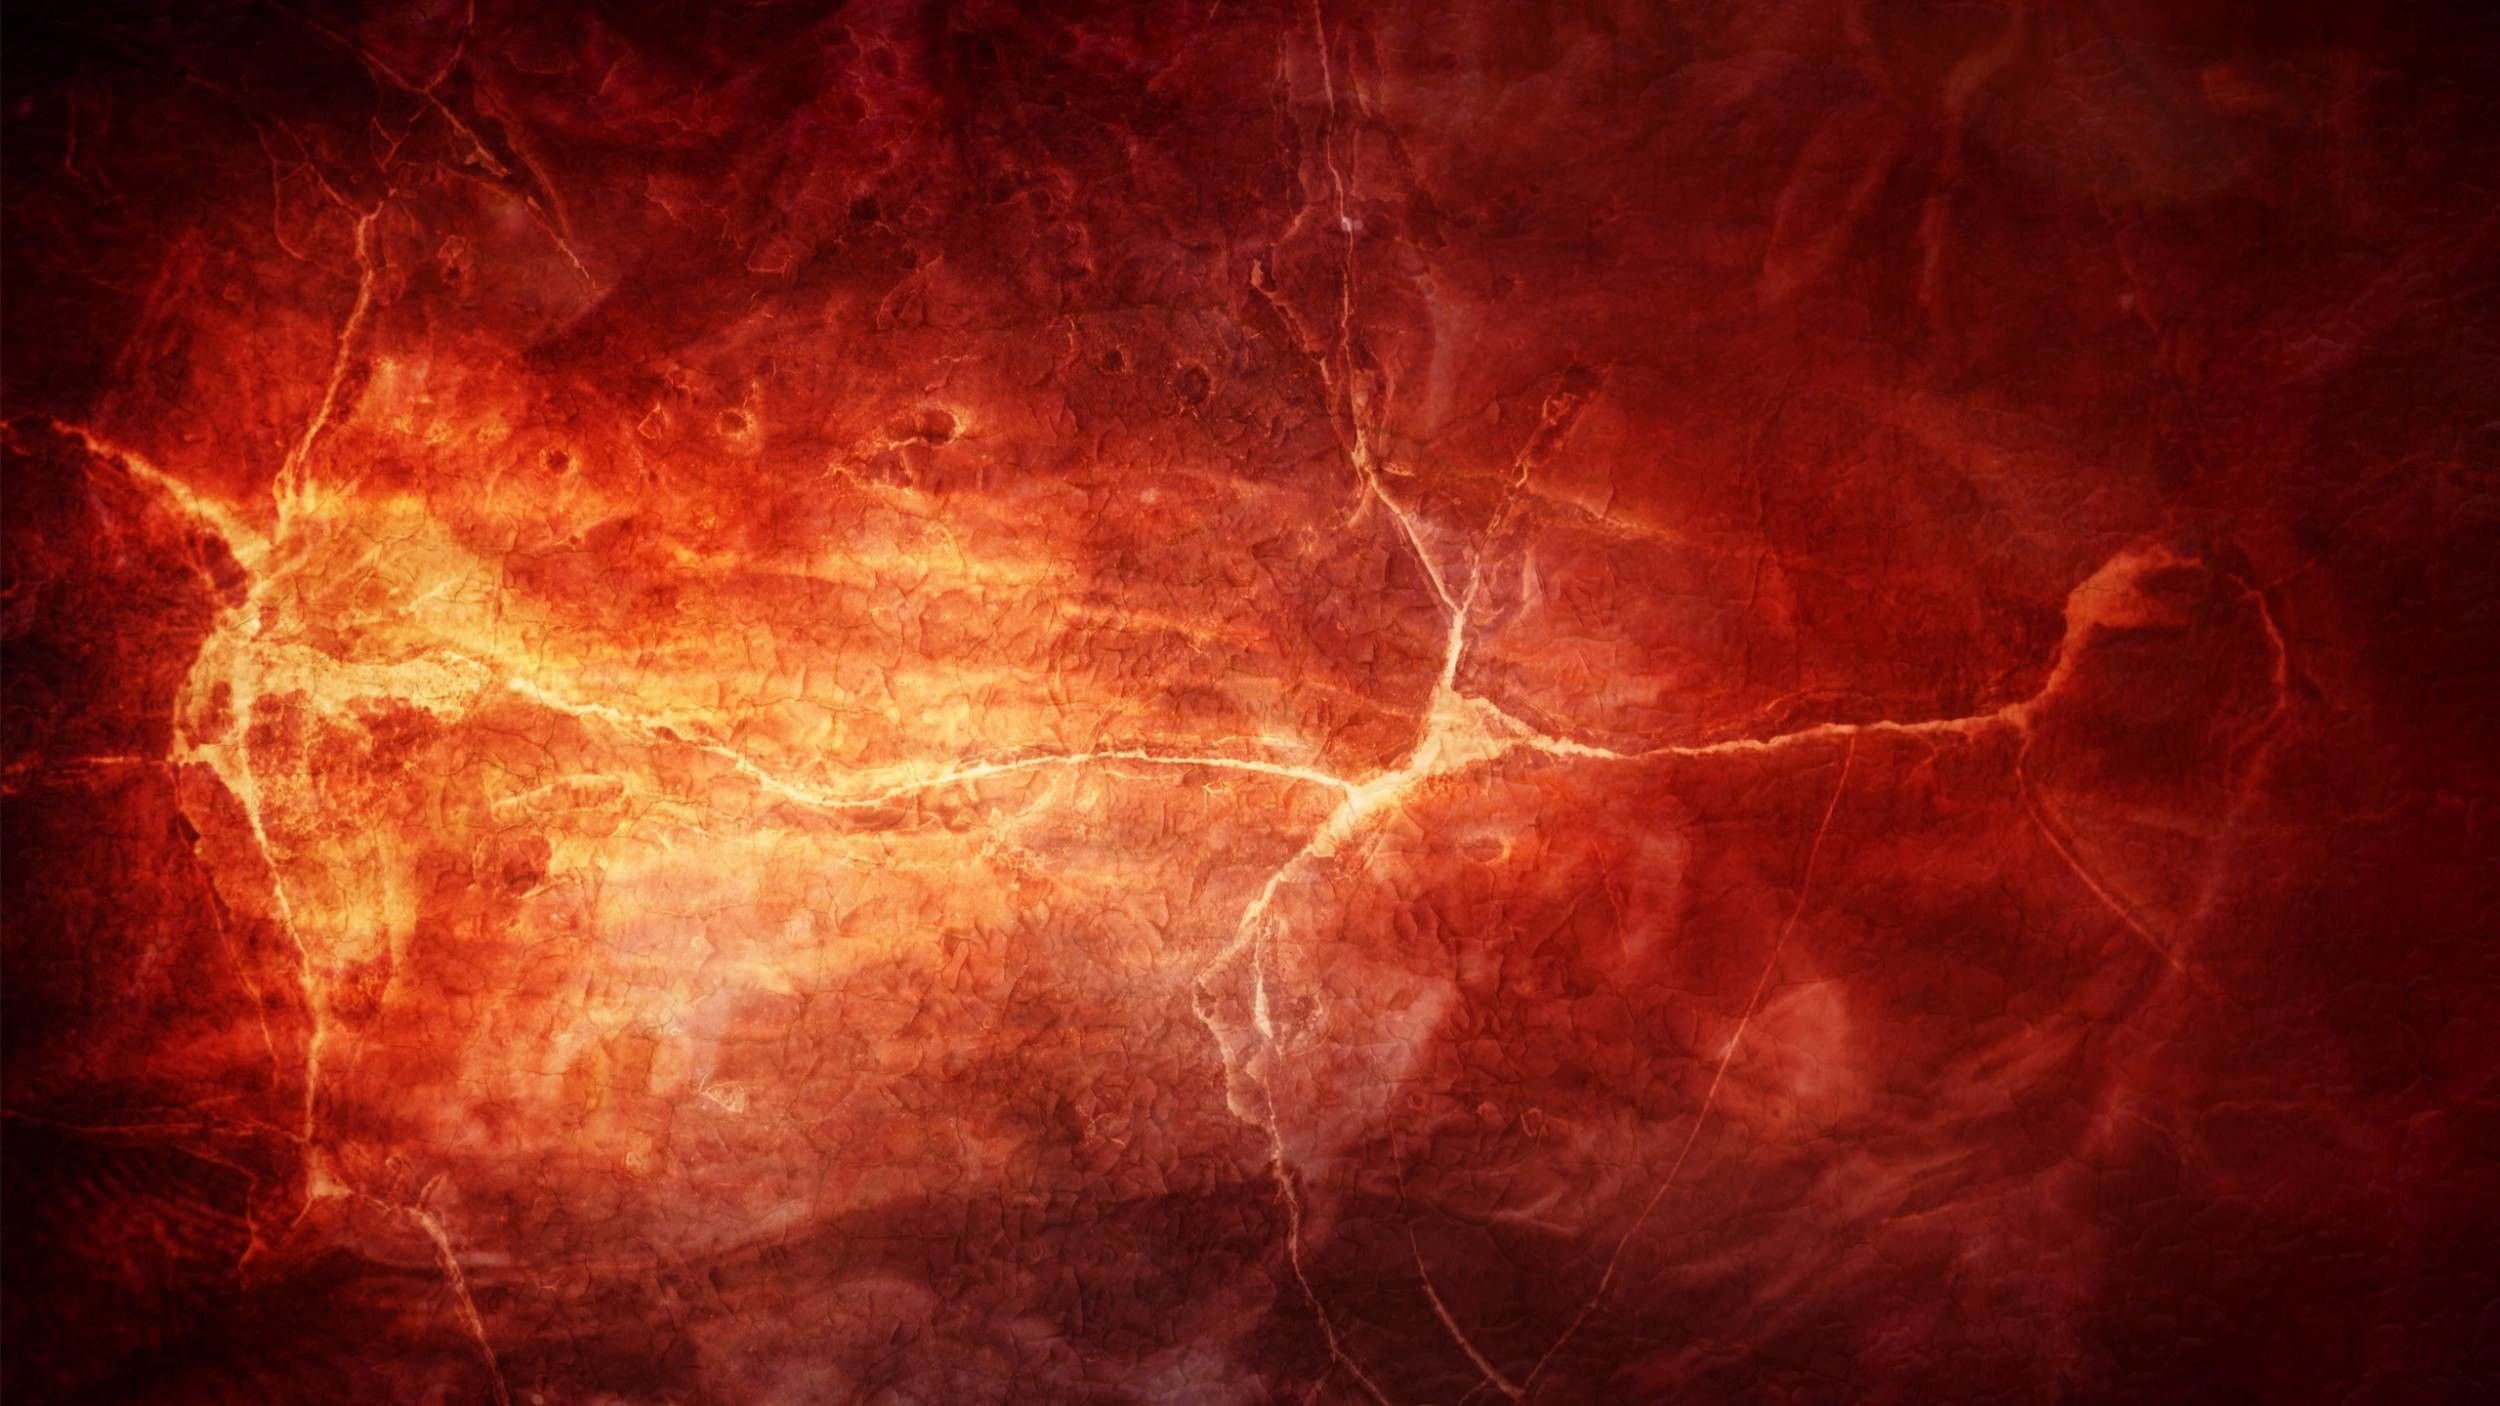 red lava images